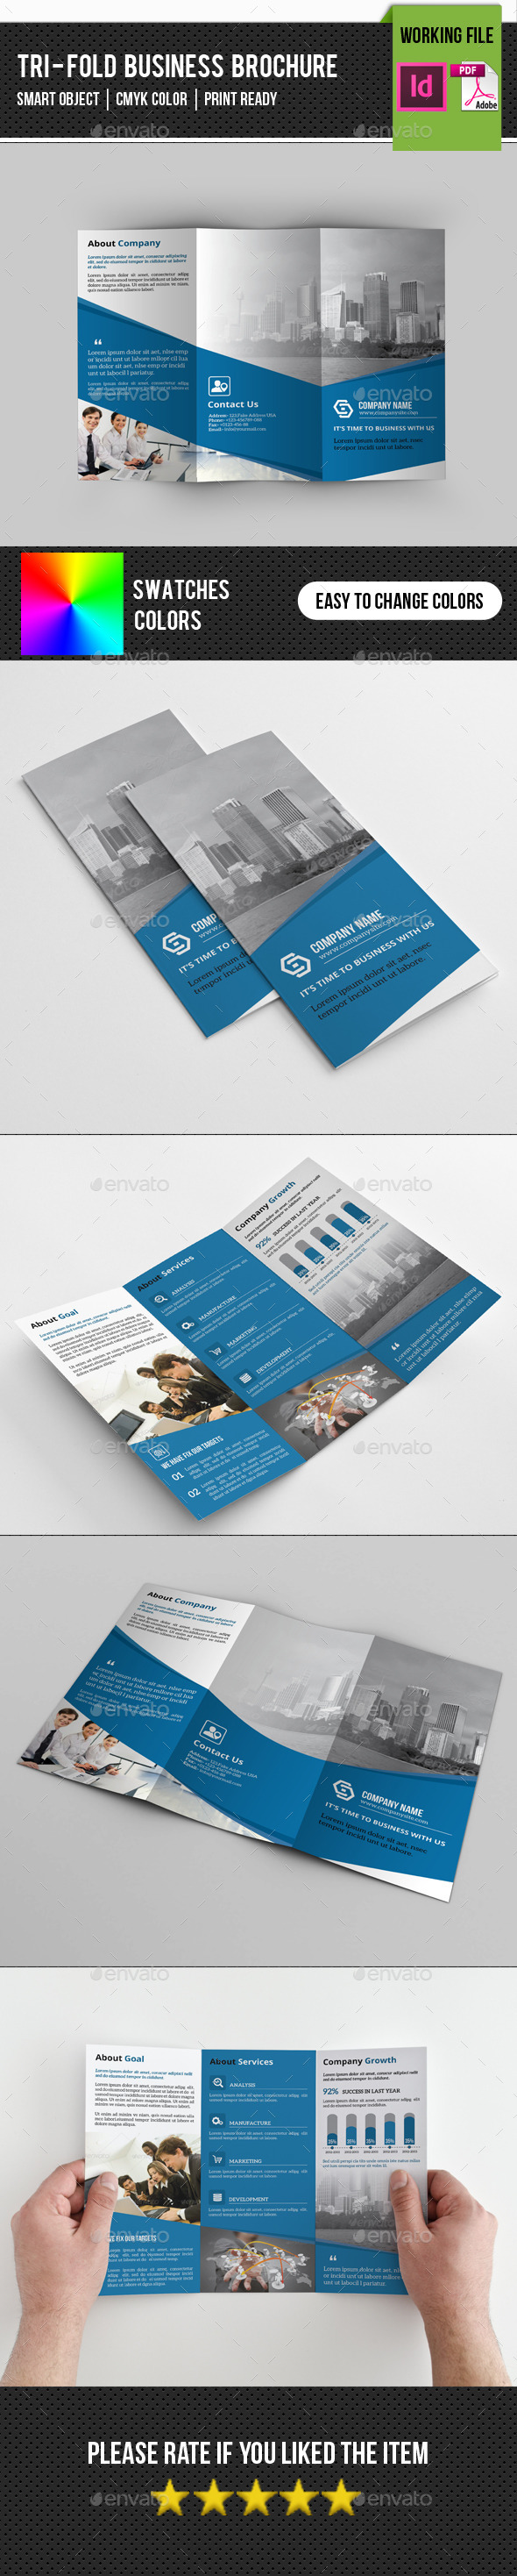 GraphicRiver Corporate Trifold Brochure-V235 11589638